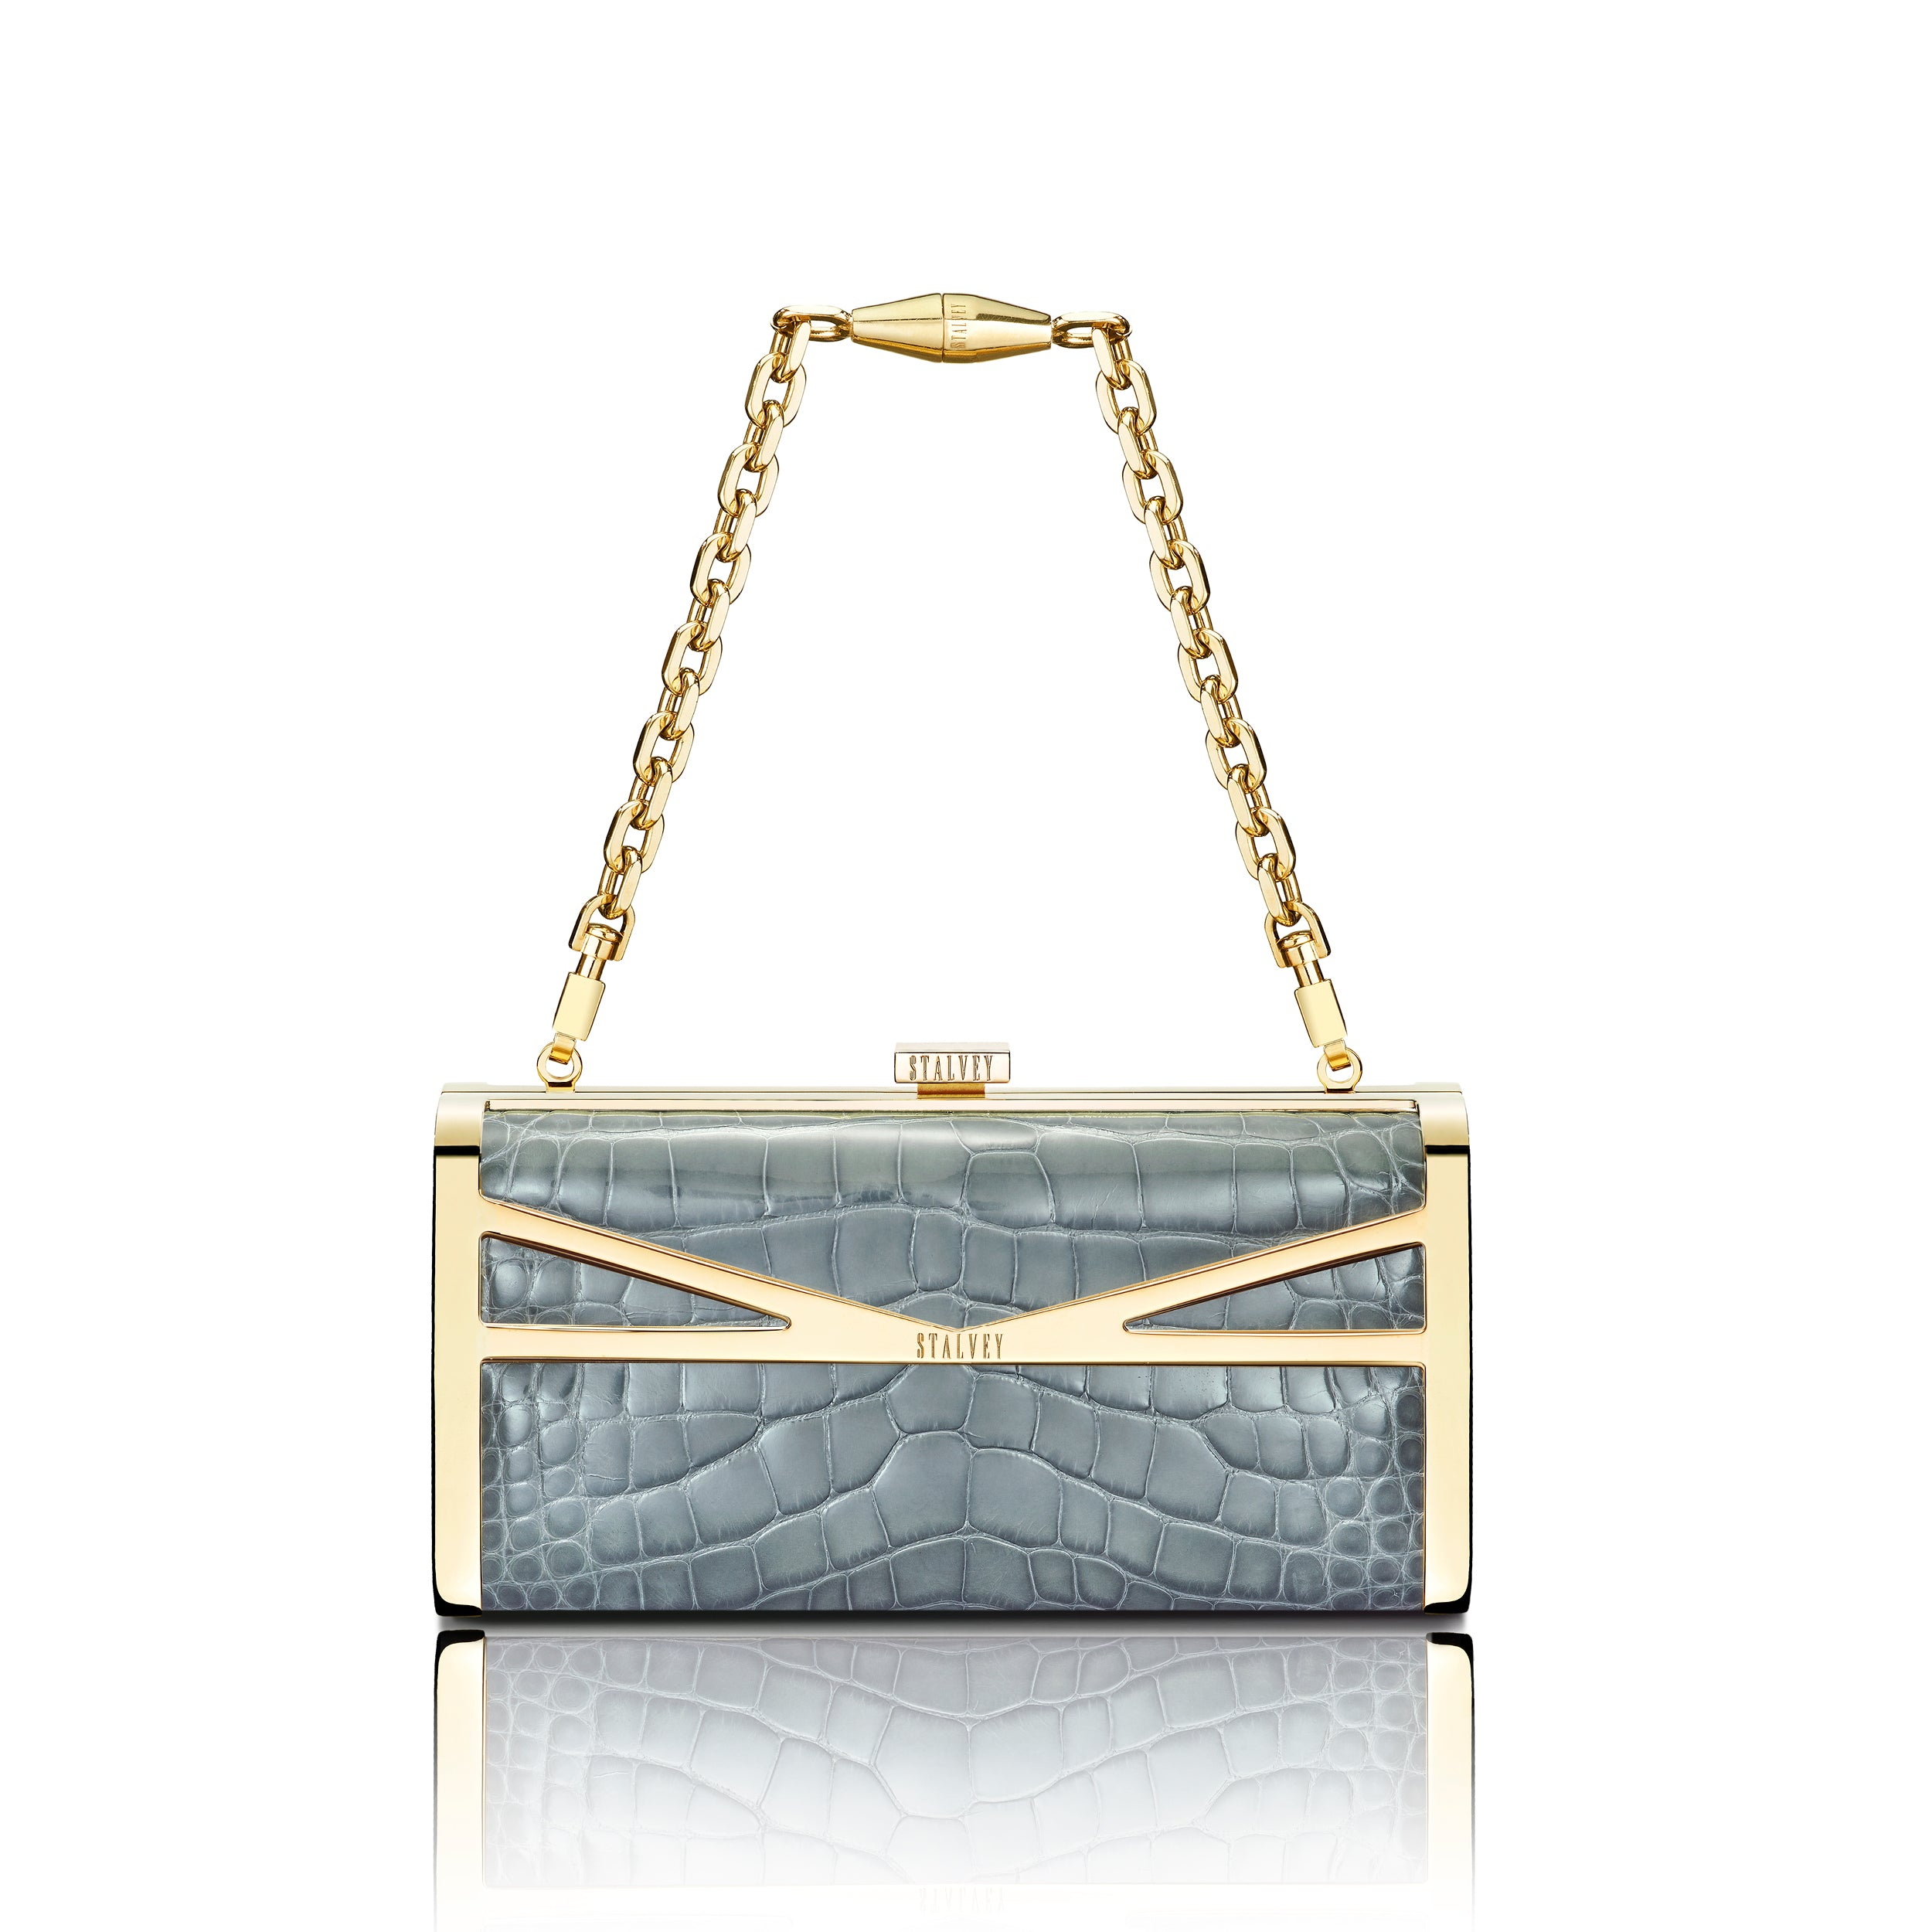 Square Clutch - Gunmetal Alligator